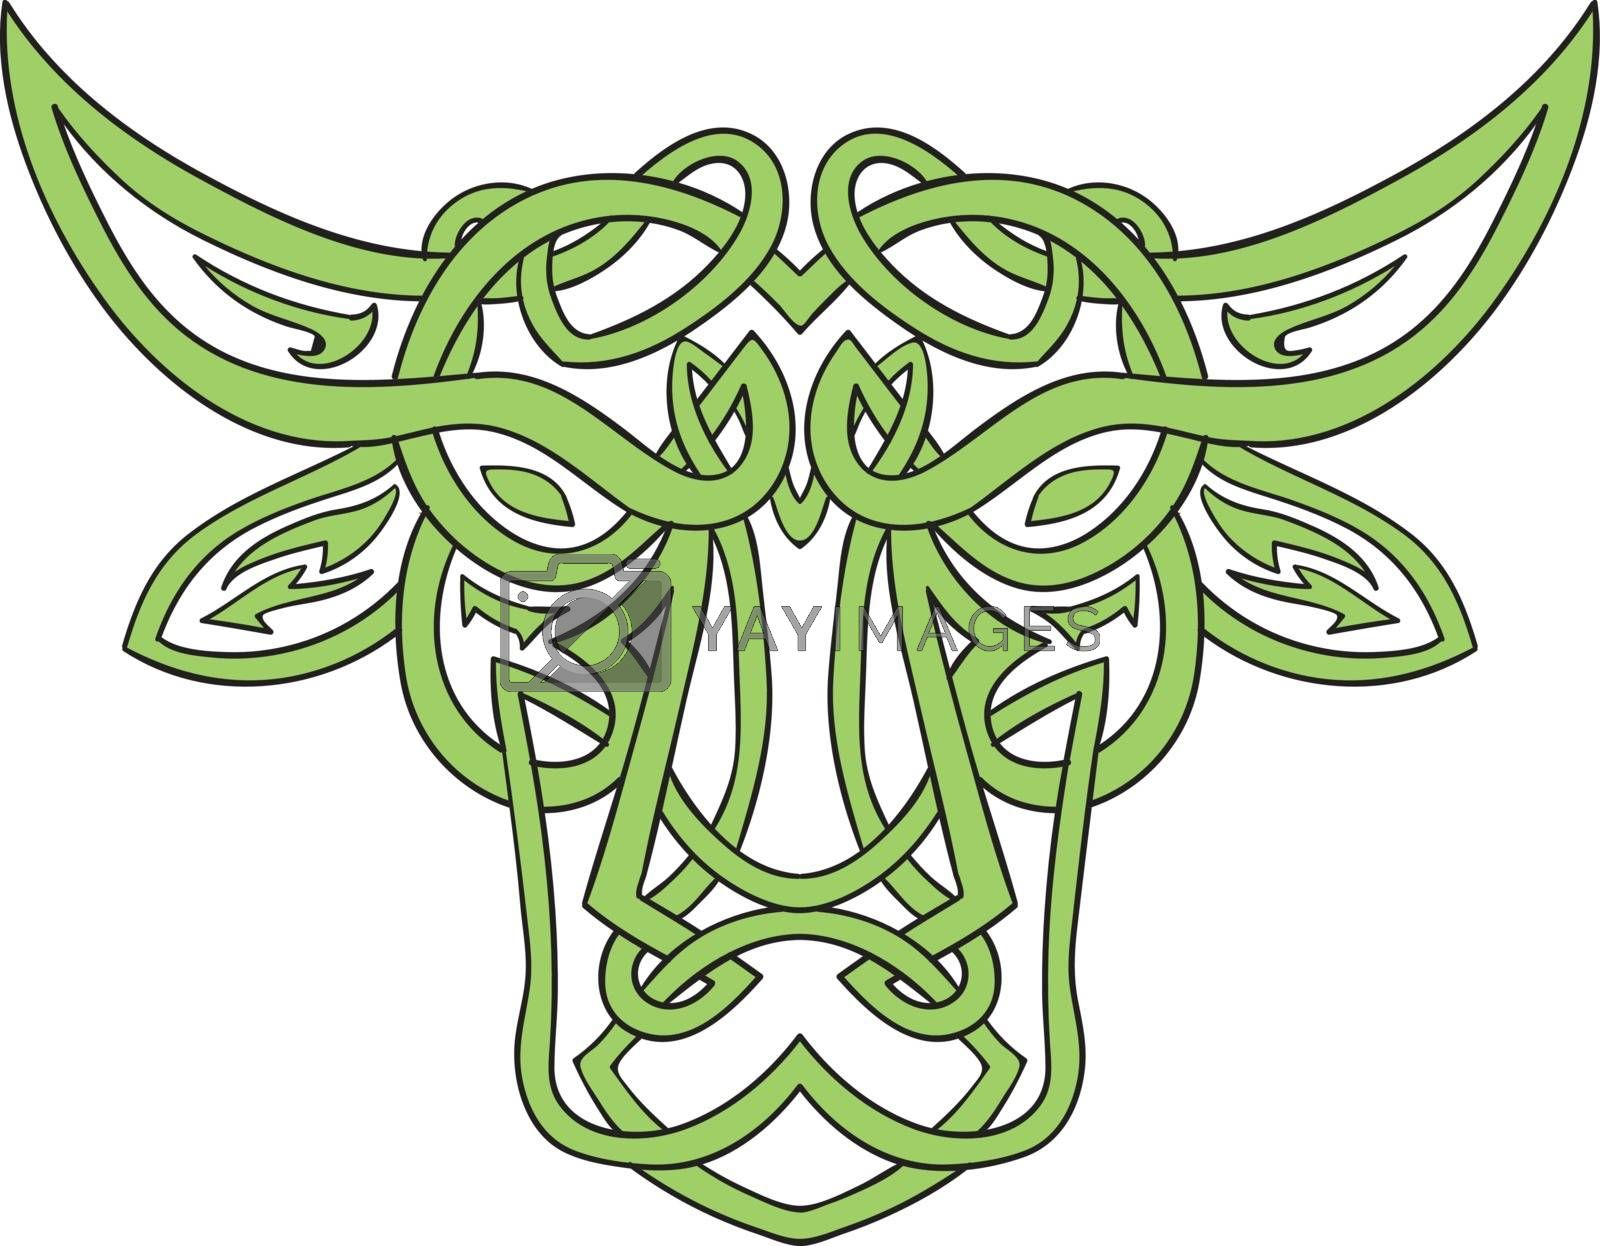 Illustration of stylized taurus the bull made in Celtic knot, called Icovellavna,  plait work or knotwork woven into unbroken cord design set on isolated white background.